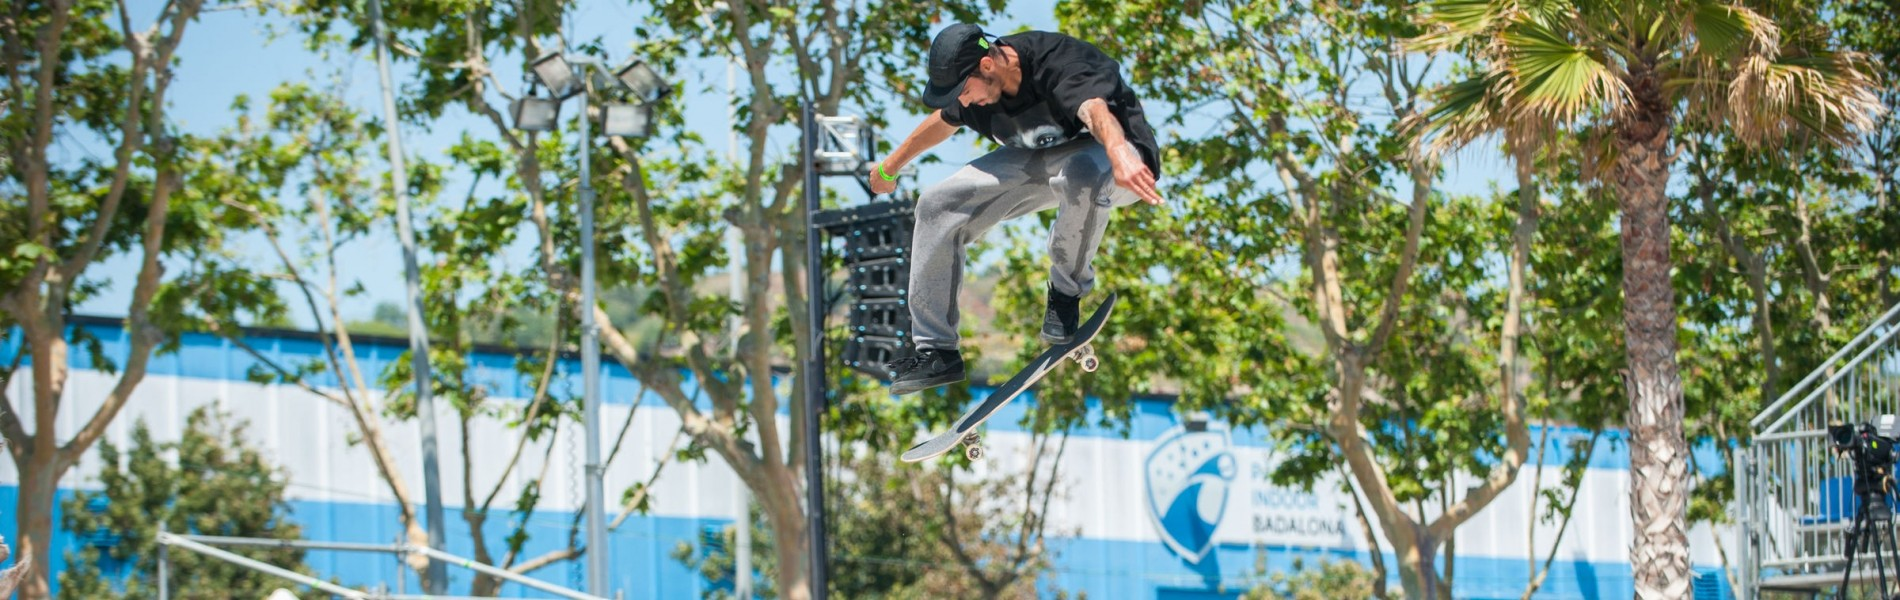 Images from the Street League Series Practice in Barcelona, Spain